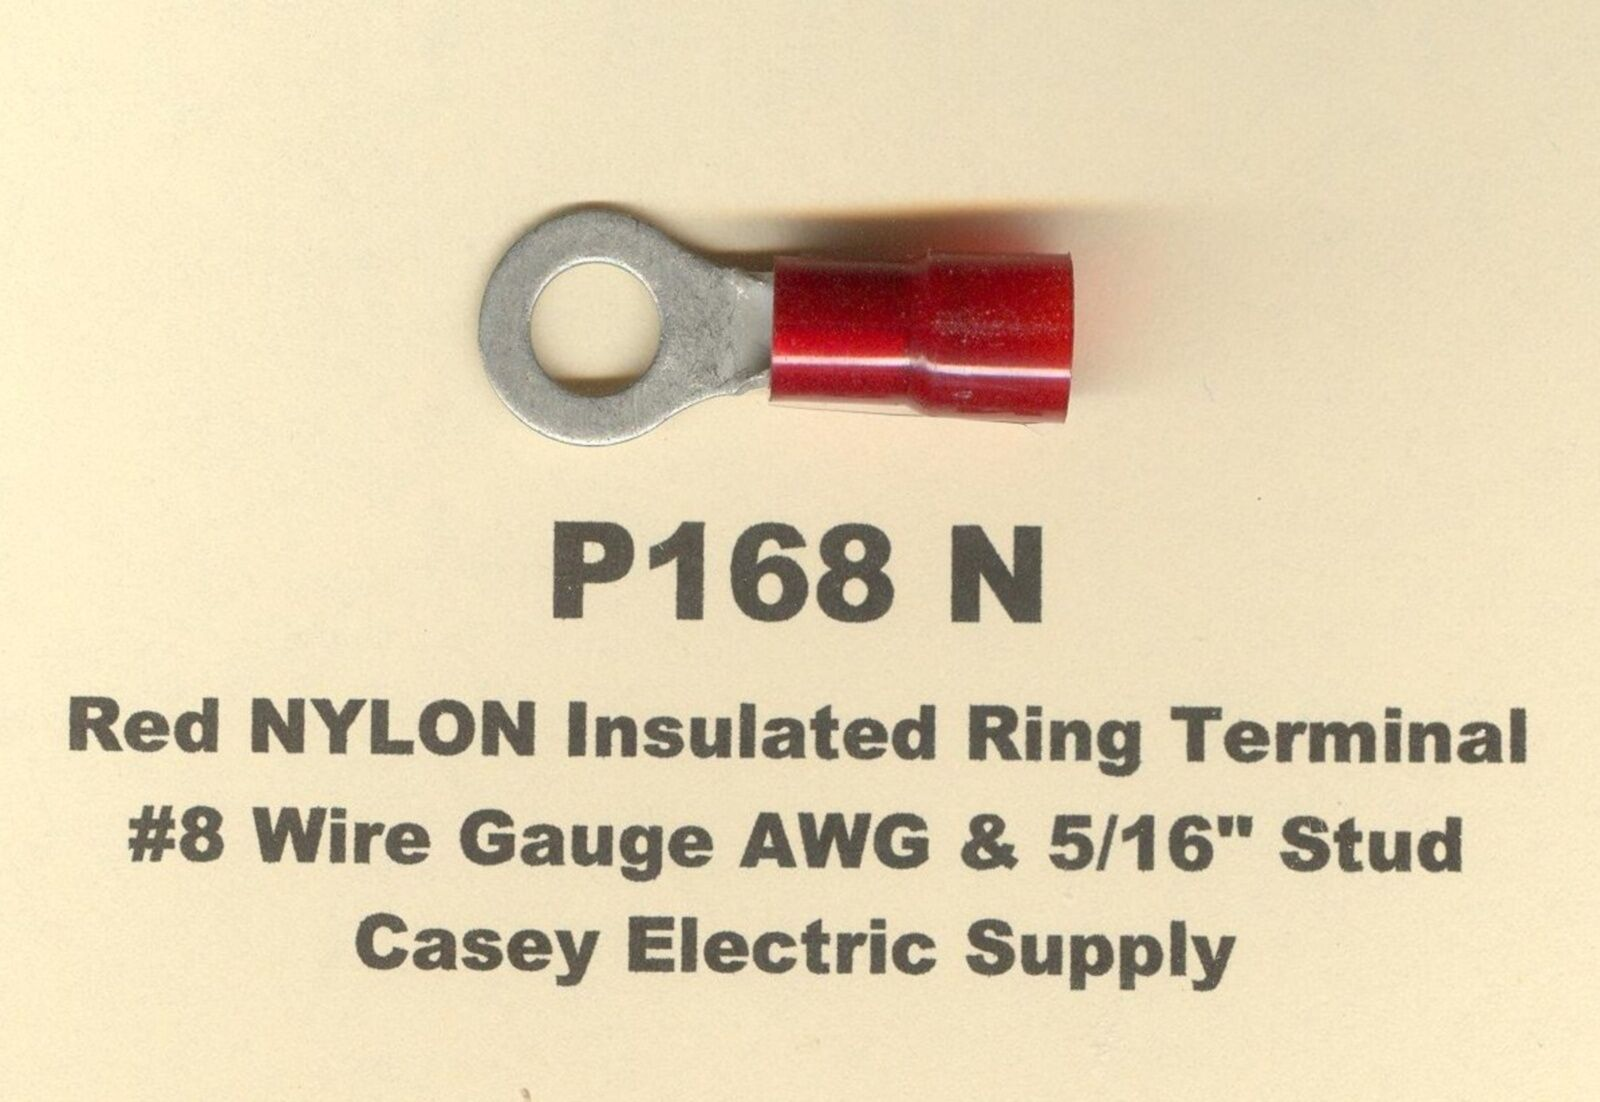 Old fashioned insulated wire 20 gauge image collection simple 20 red nylon insulated ring terminal connector 8 wire gauge 516 greentooth Gallery